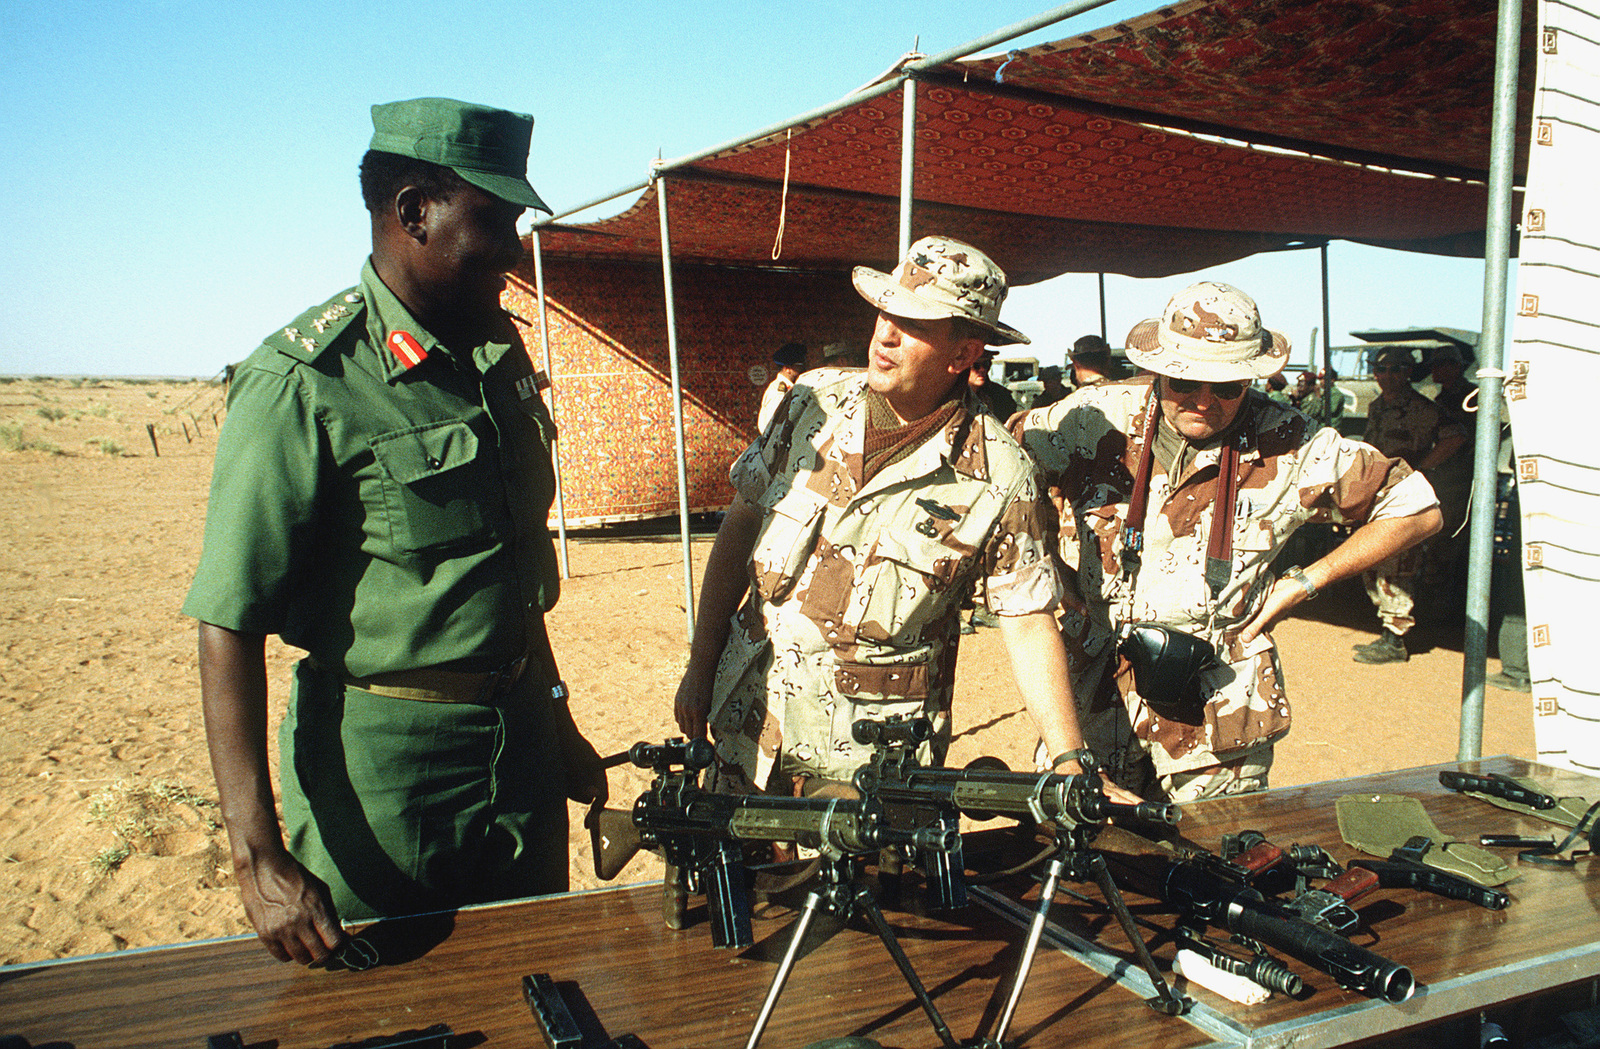 A high ranking Sudanese officer, left, and two Army colonels examine German built 7.62 mm G3 Heckler and Koch rifles on display during BRIGHT STAR '82, an exercise involving troops from the US, Egypt, Sudan, Somalia and Oman